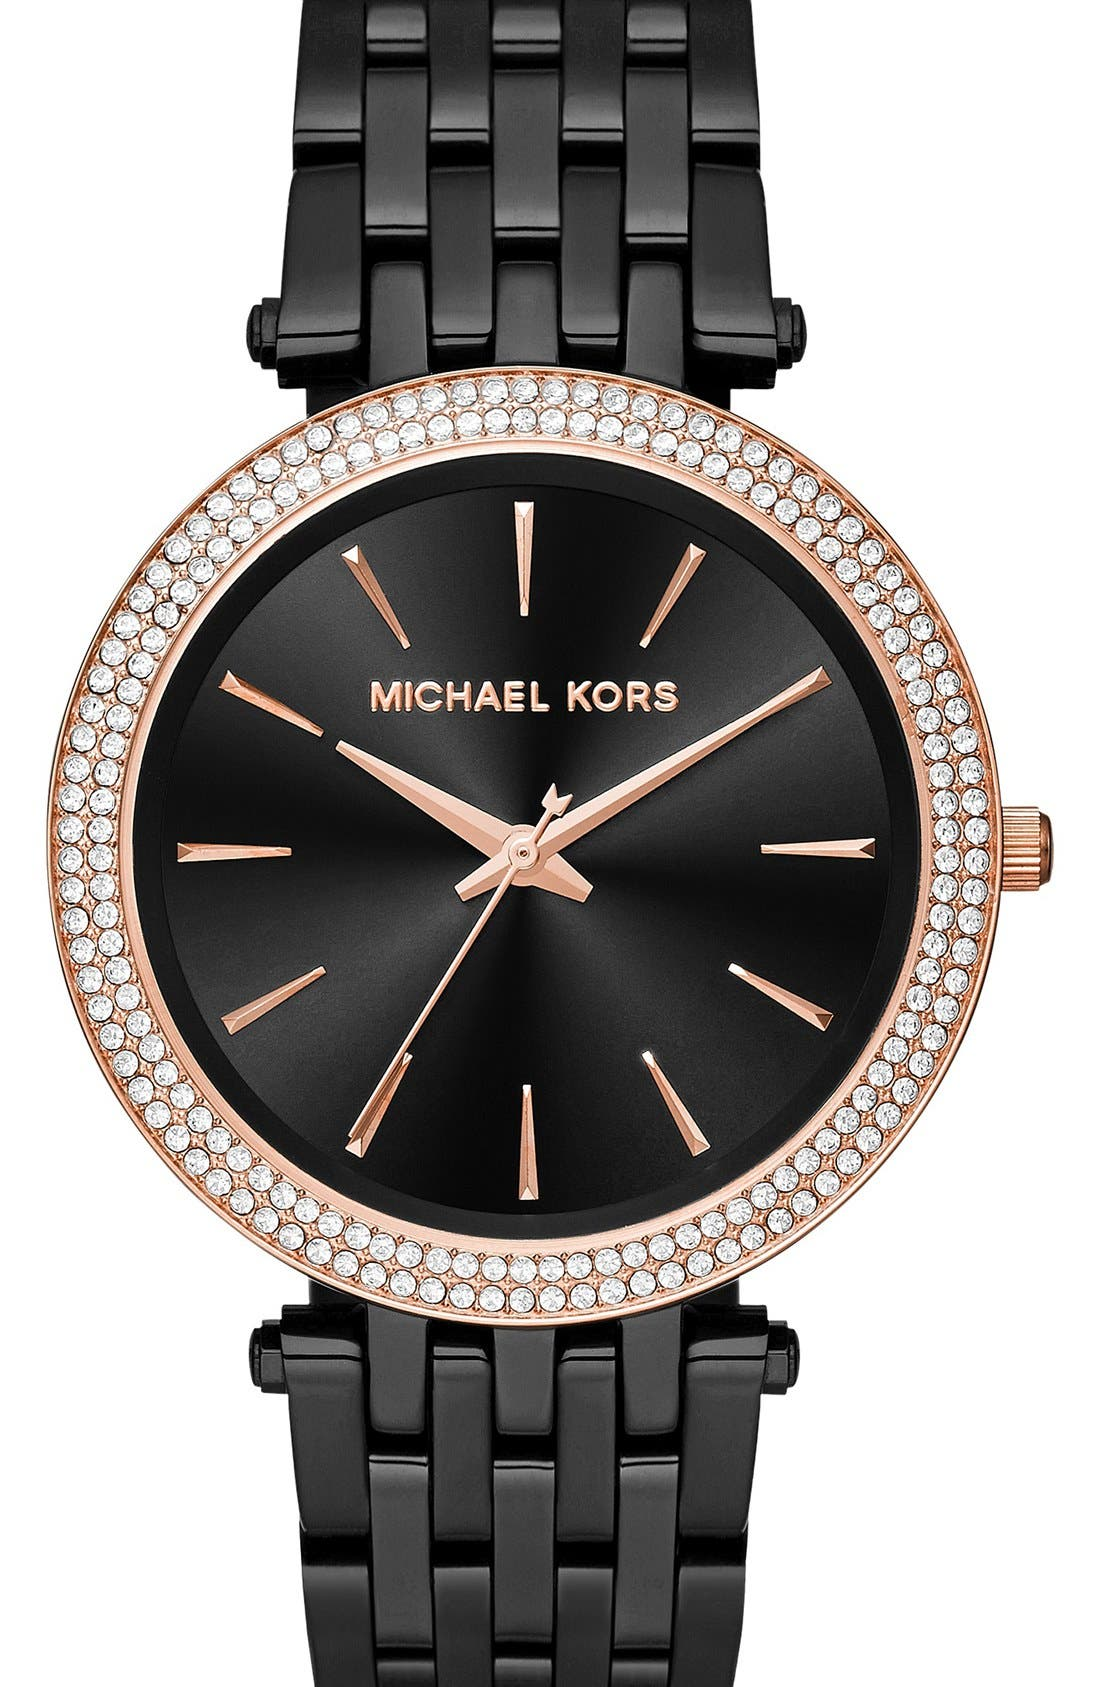 MICHAEL KORS 'Darci' Round Bracelet Watch, 39mm, Main, color, 001